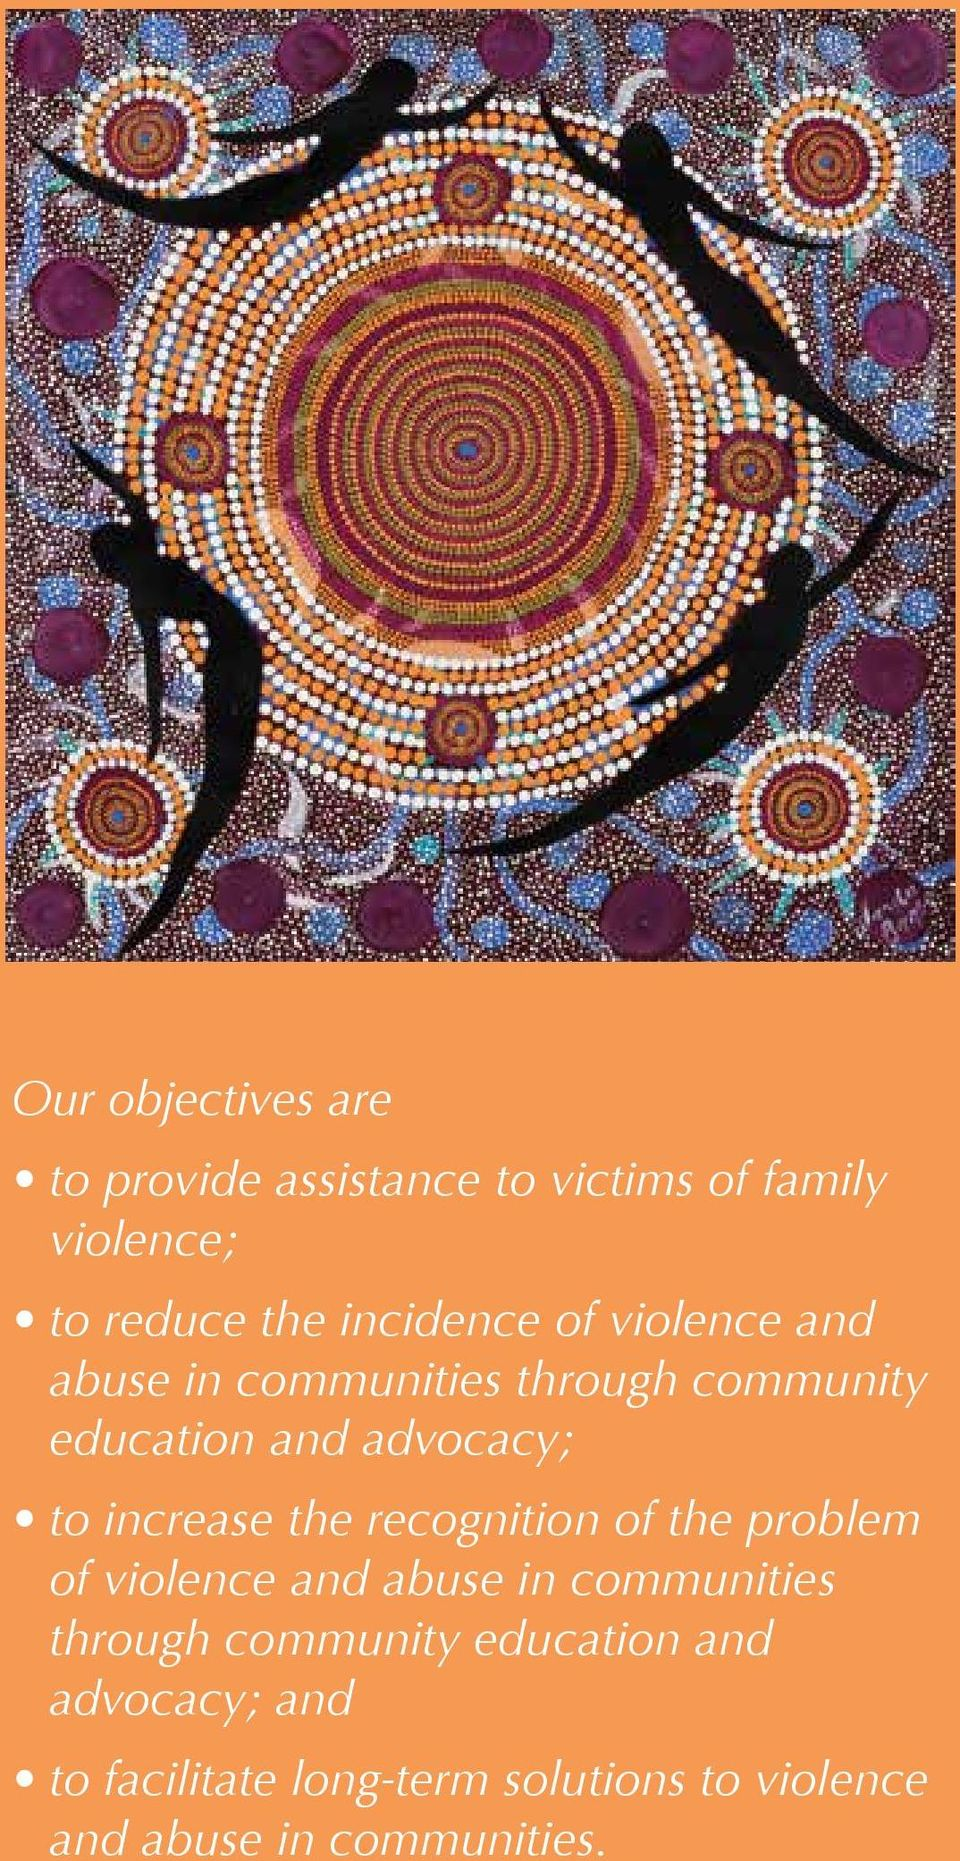 increase the recognition of the problem of violence and abuse in communities through